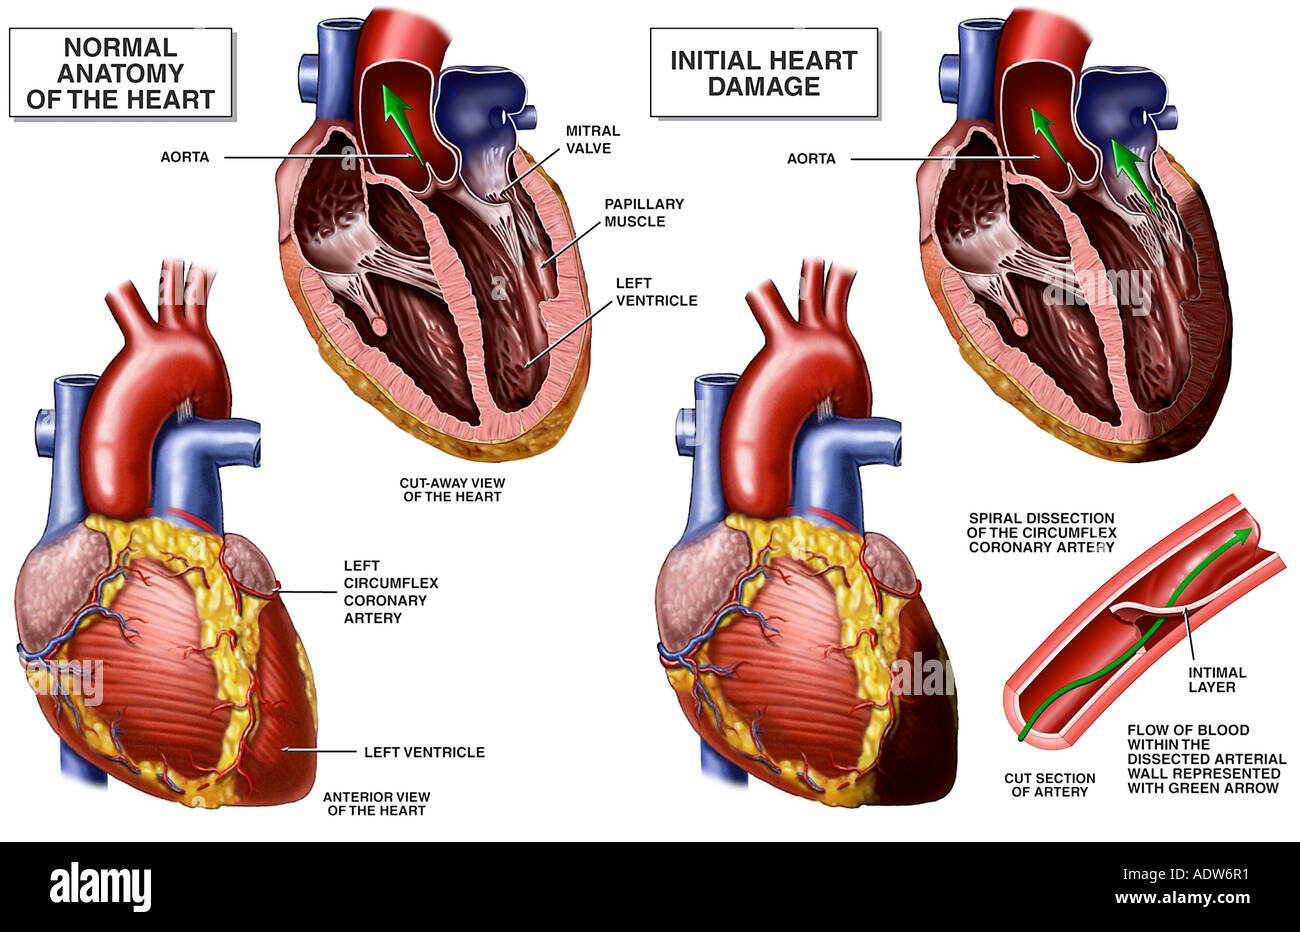 Coronary Artery Disease Arterial Dissection Stock Photo: 7712240 - Alamy